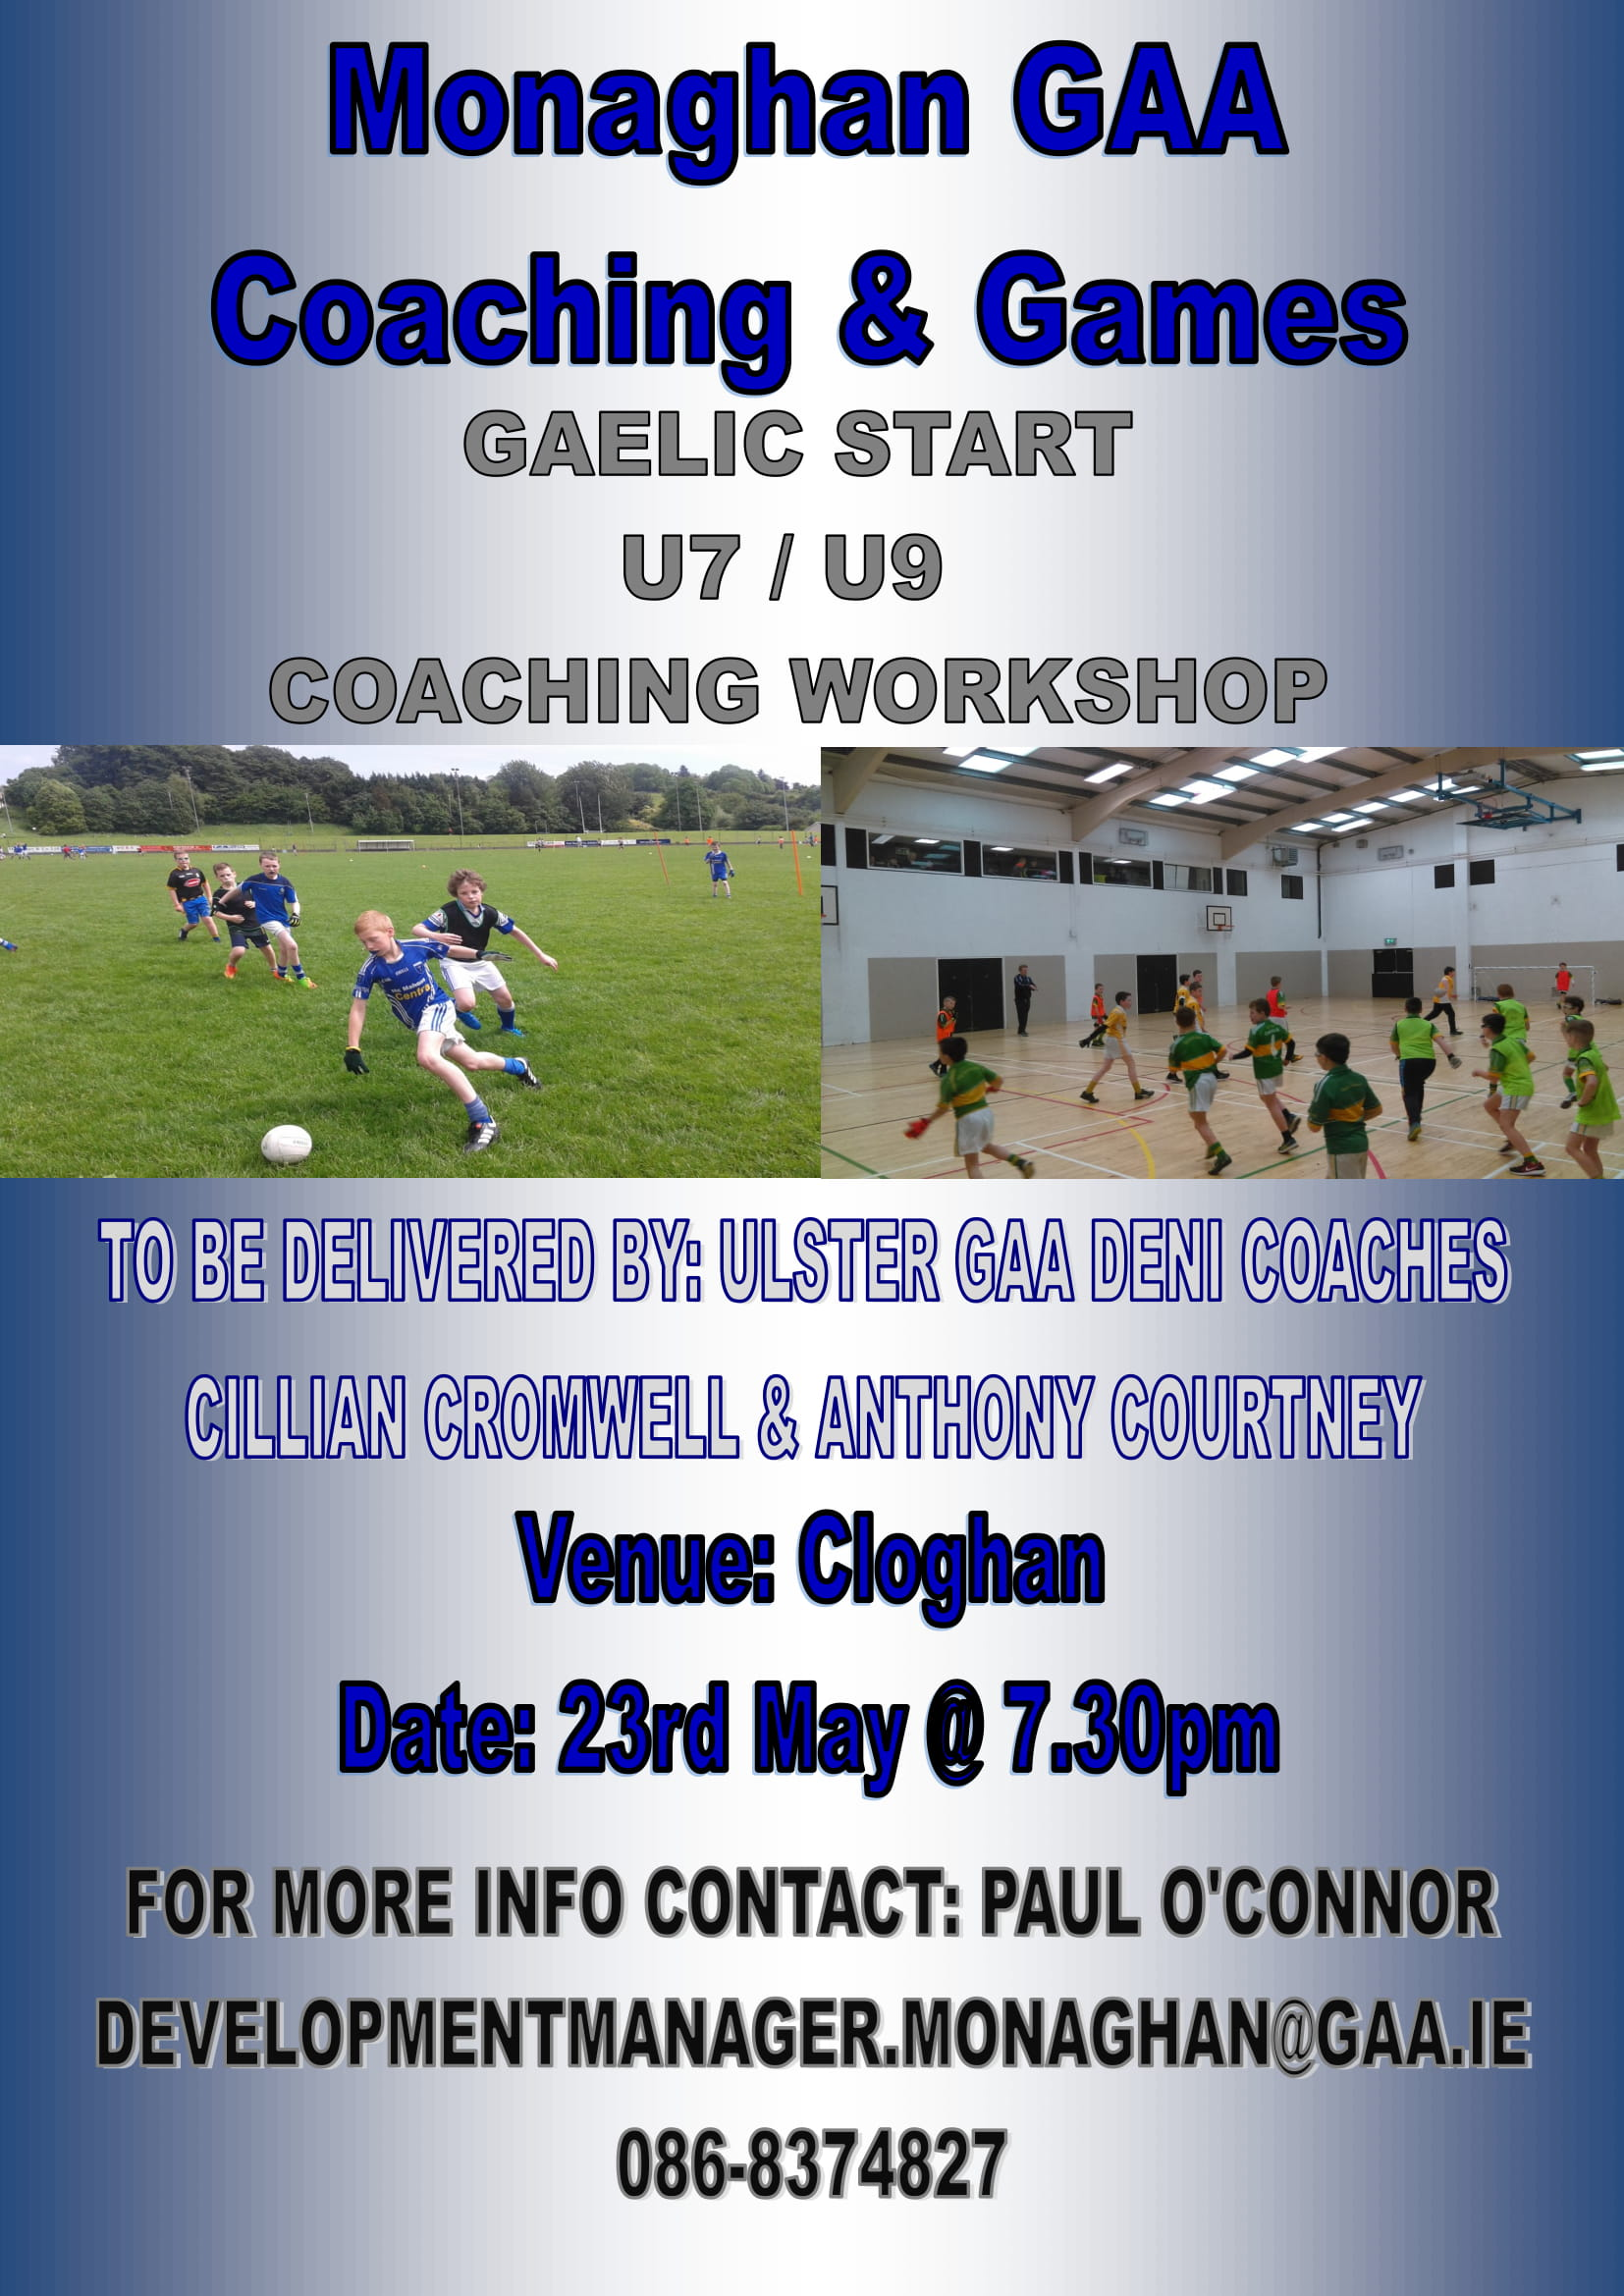 Gaelic Start Workshop – 23rd May @ Cloghan